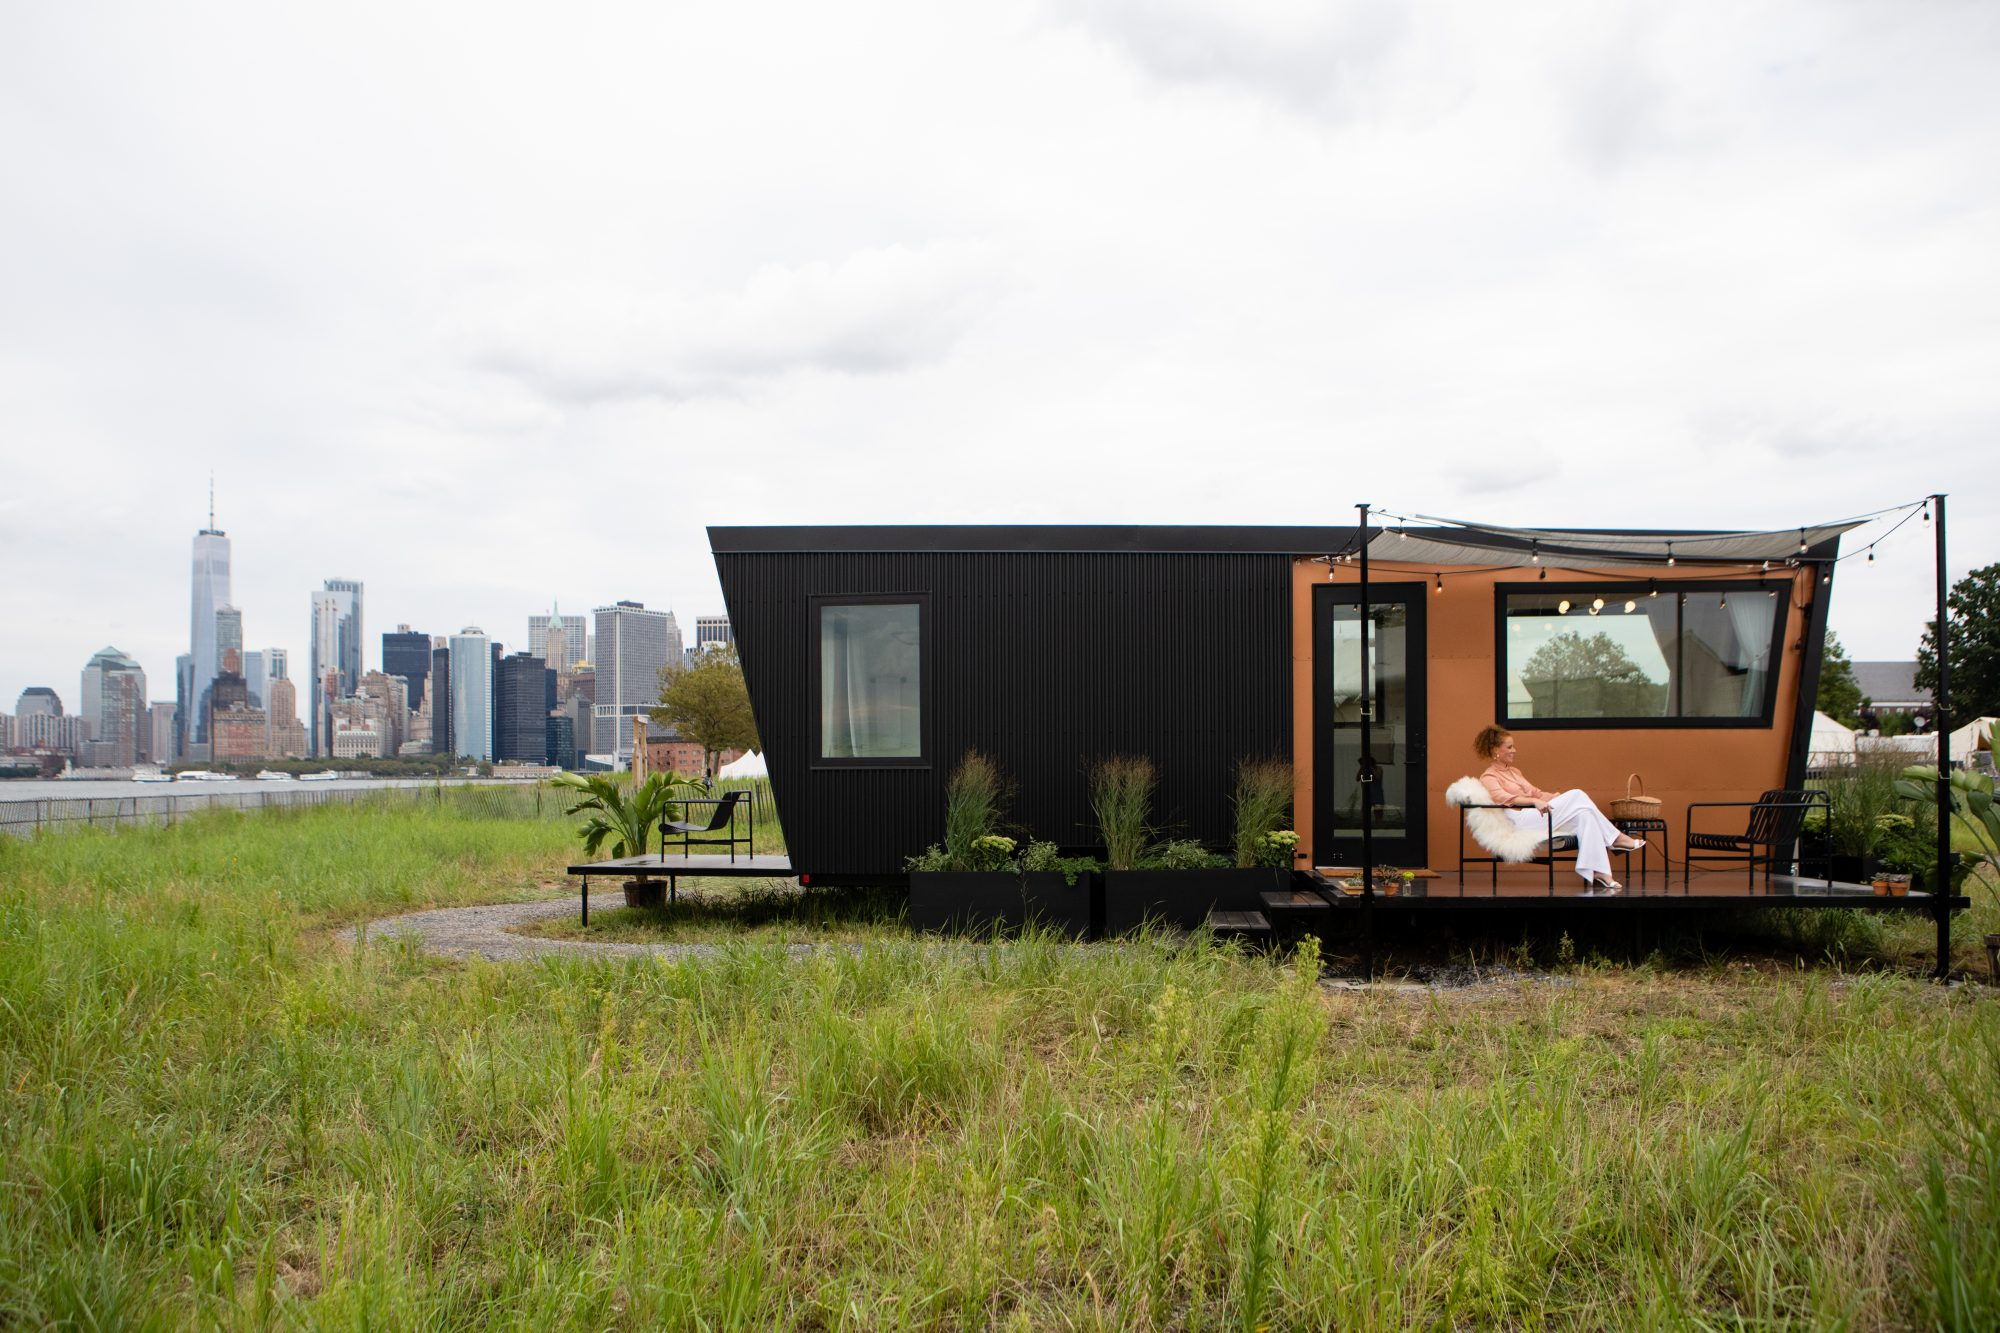 For $595/night, you can go glamping in a 300-square-foot